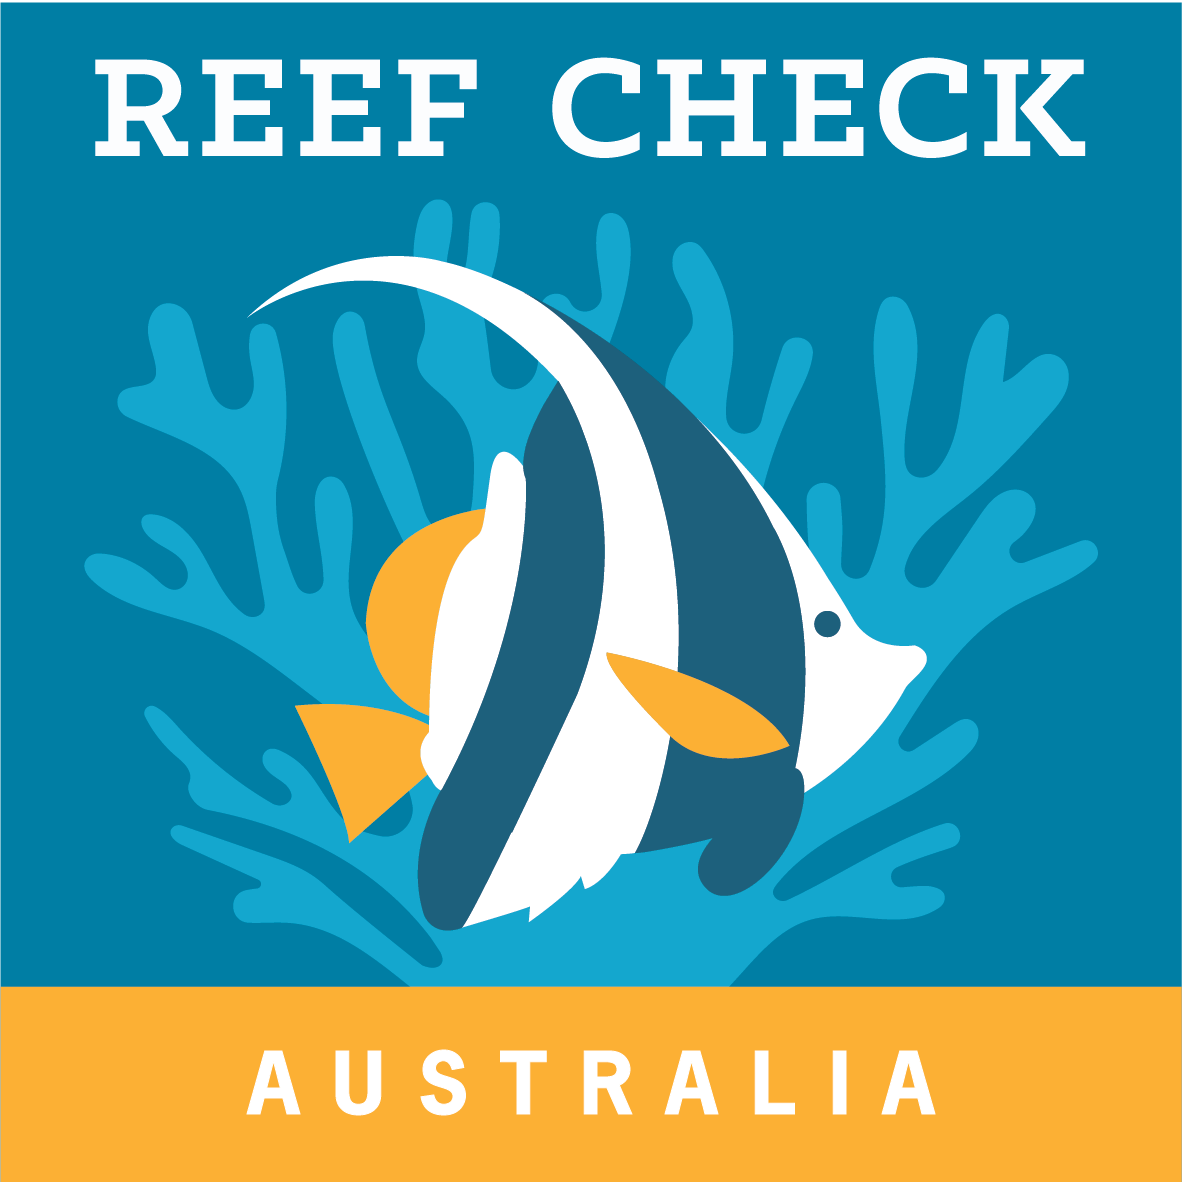 Reef Check New Logo 2018_Light Blue.png